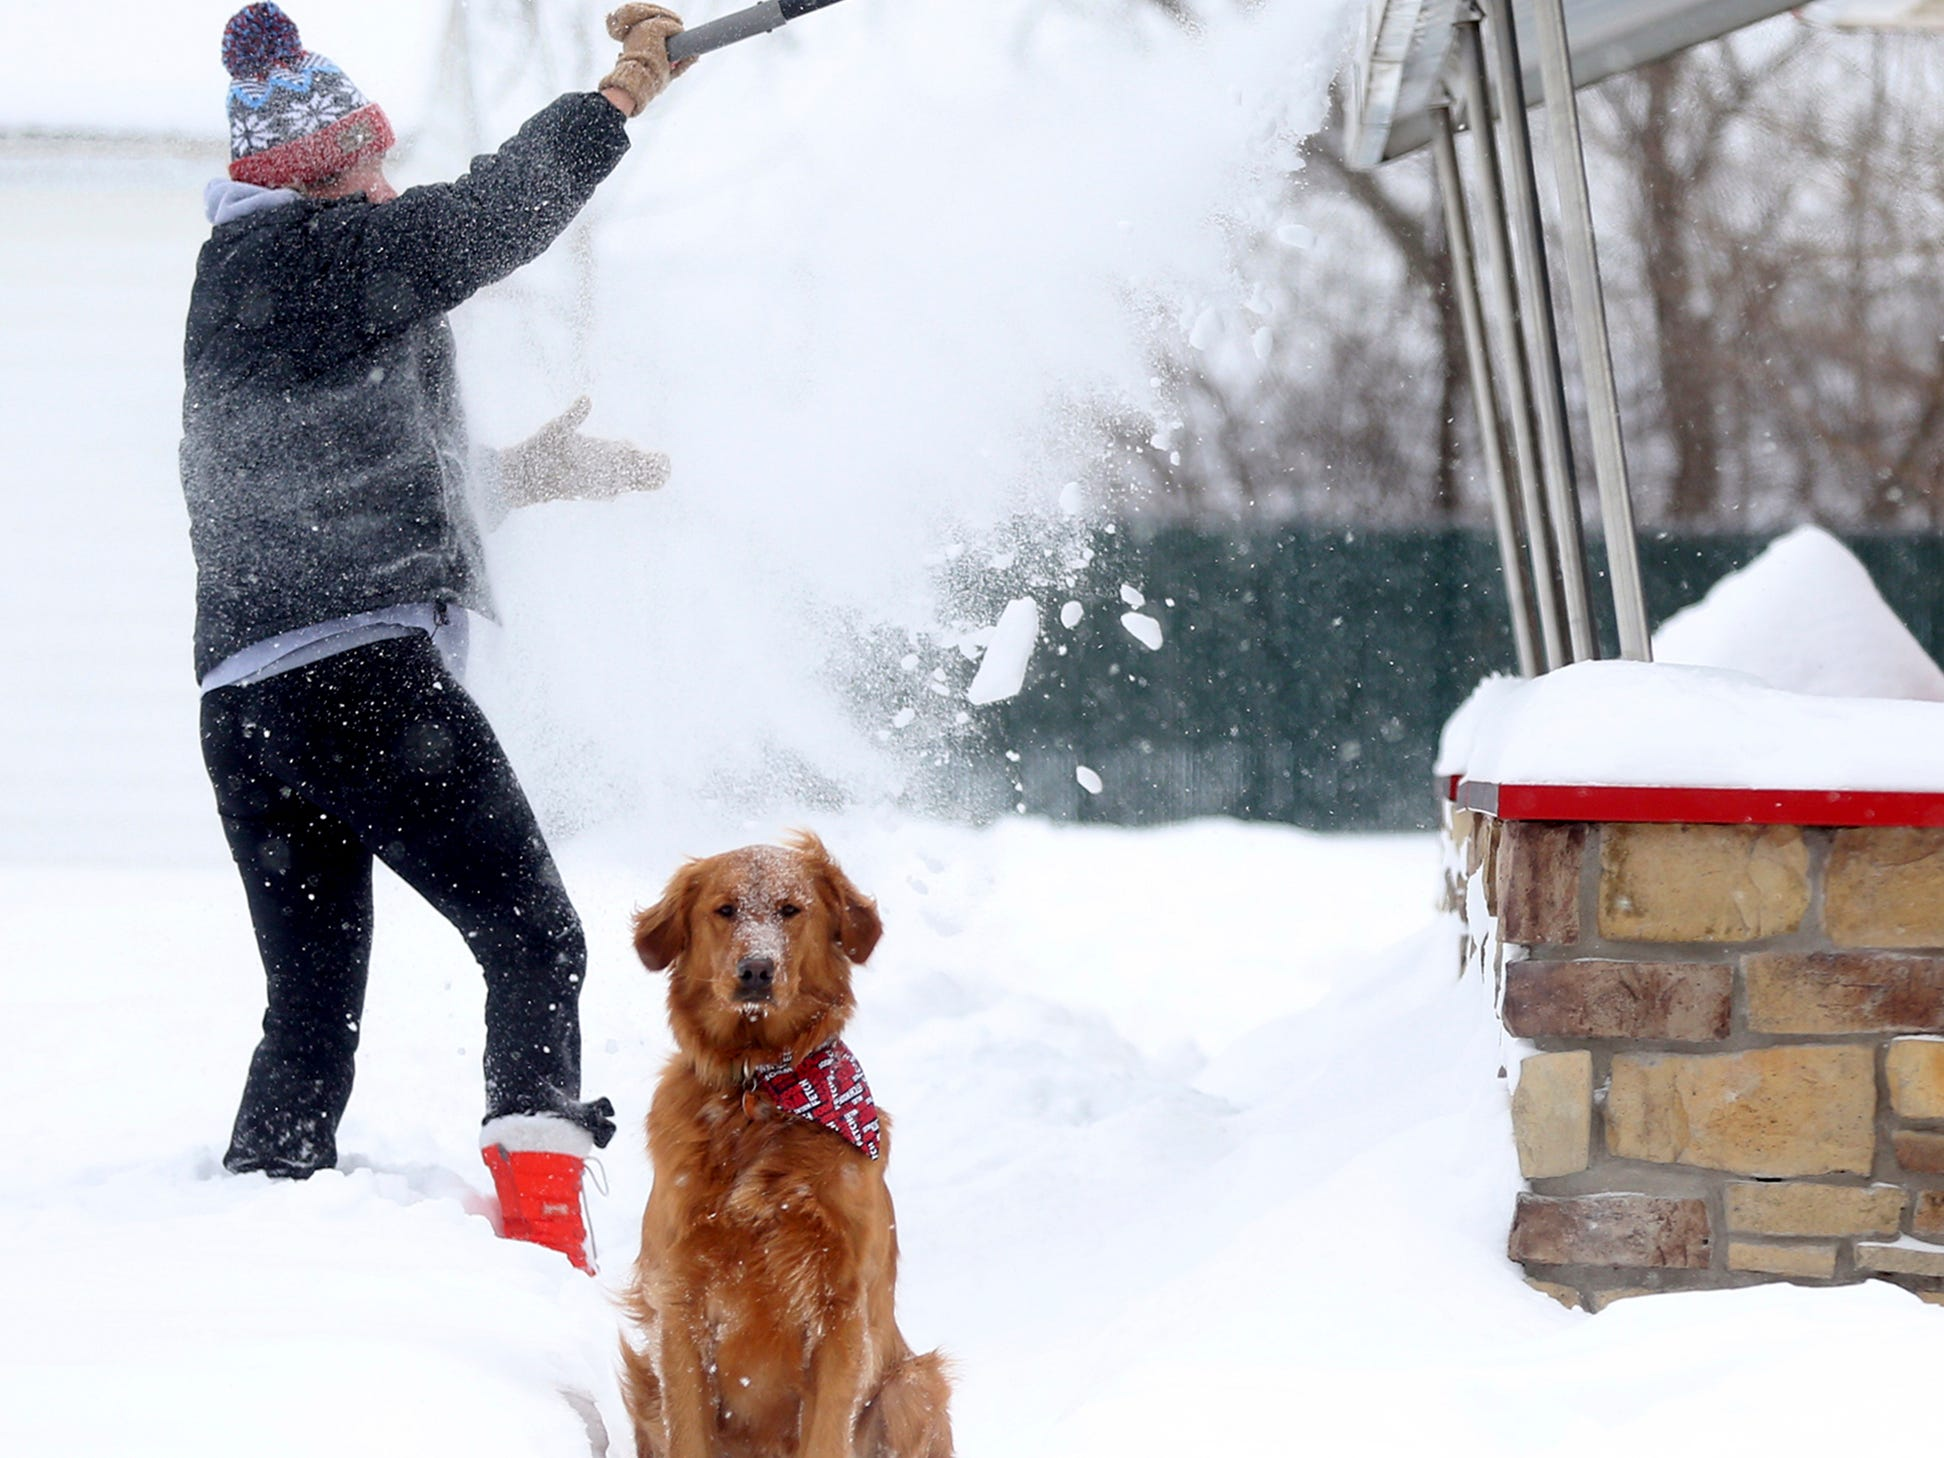 Vicki Blake clears snow from an awning on Dairy Queen while his dog Wrigley stands by in Dubuque, Iowa on Jan. 28, 2019.